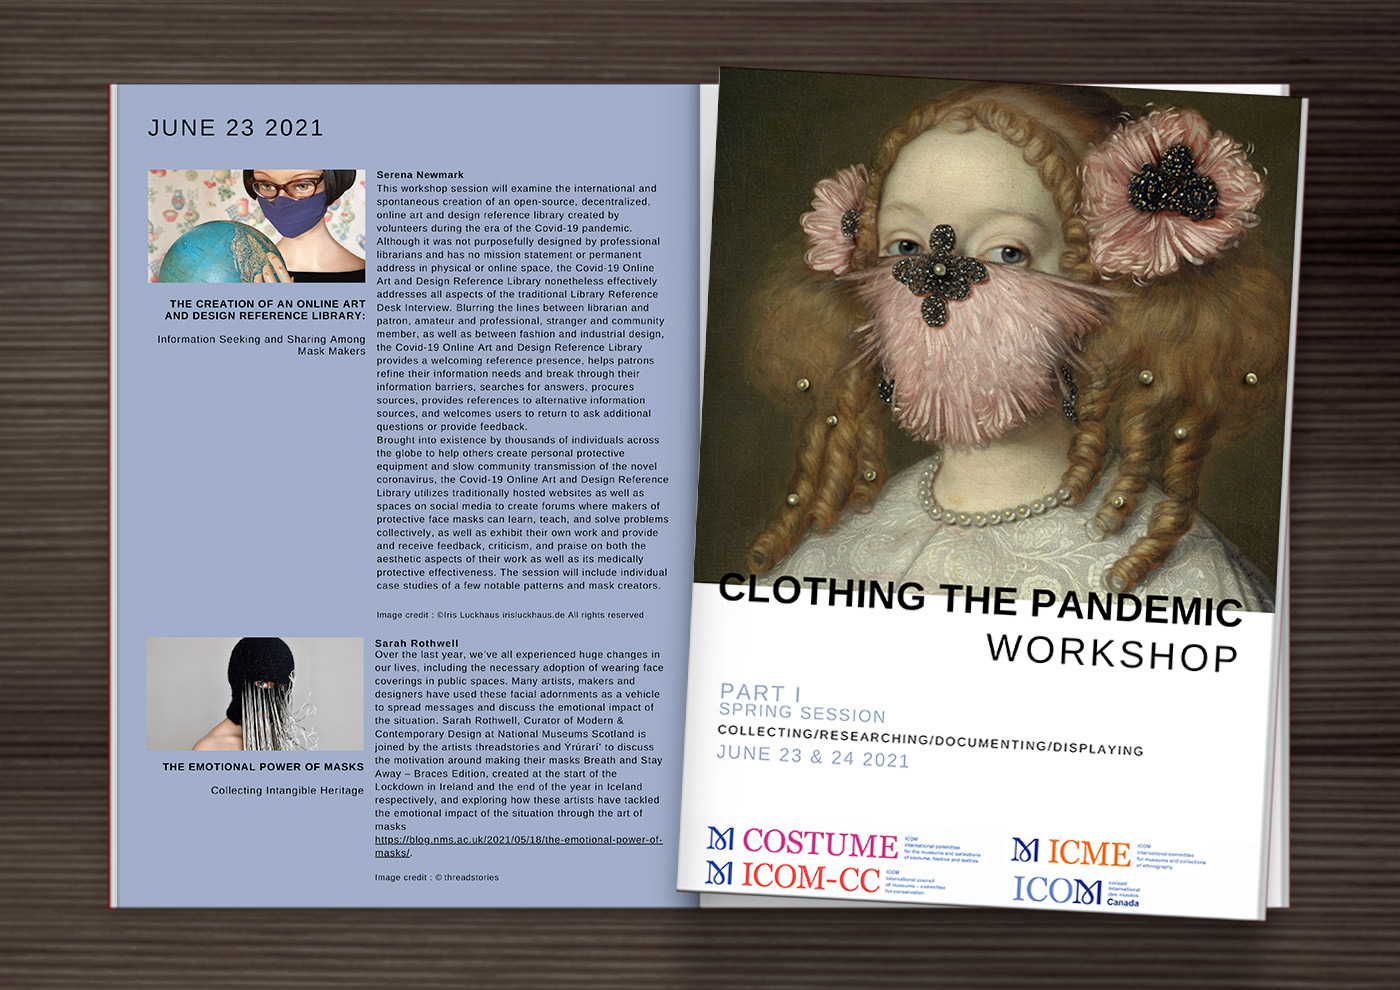 Clothing the Pandemic Workshop by ICOM International Committee for Museums and Collections of Costume, Fashion and Textile